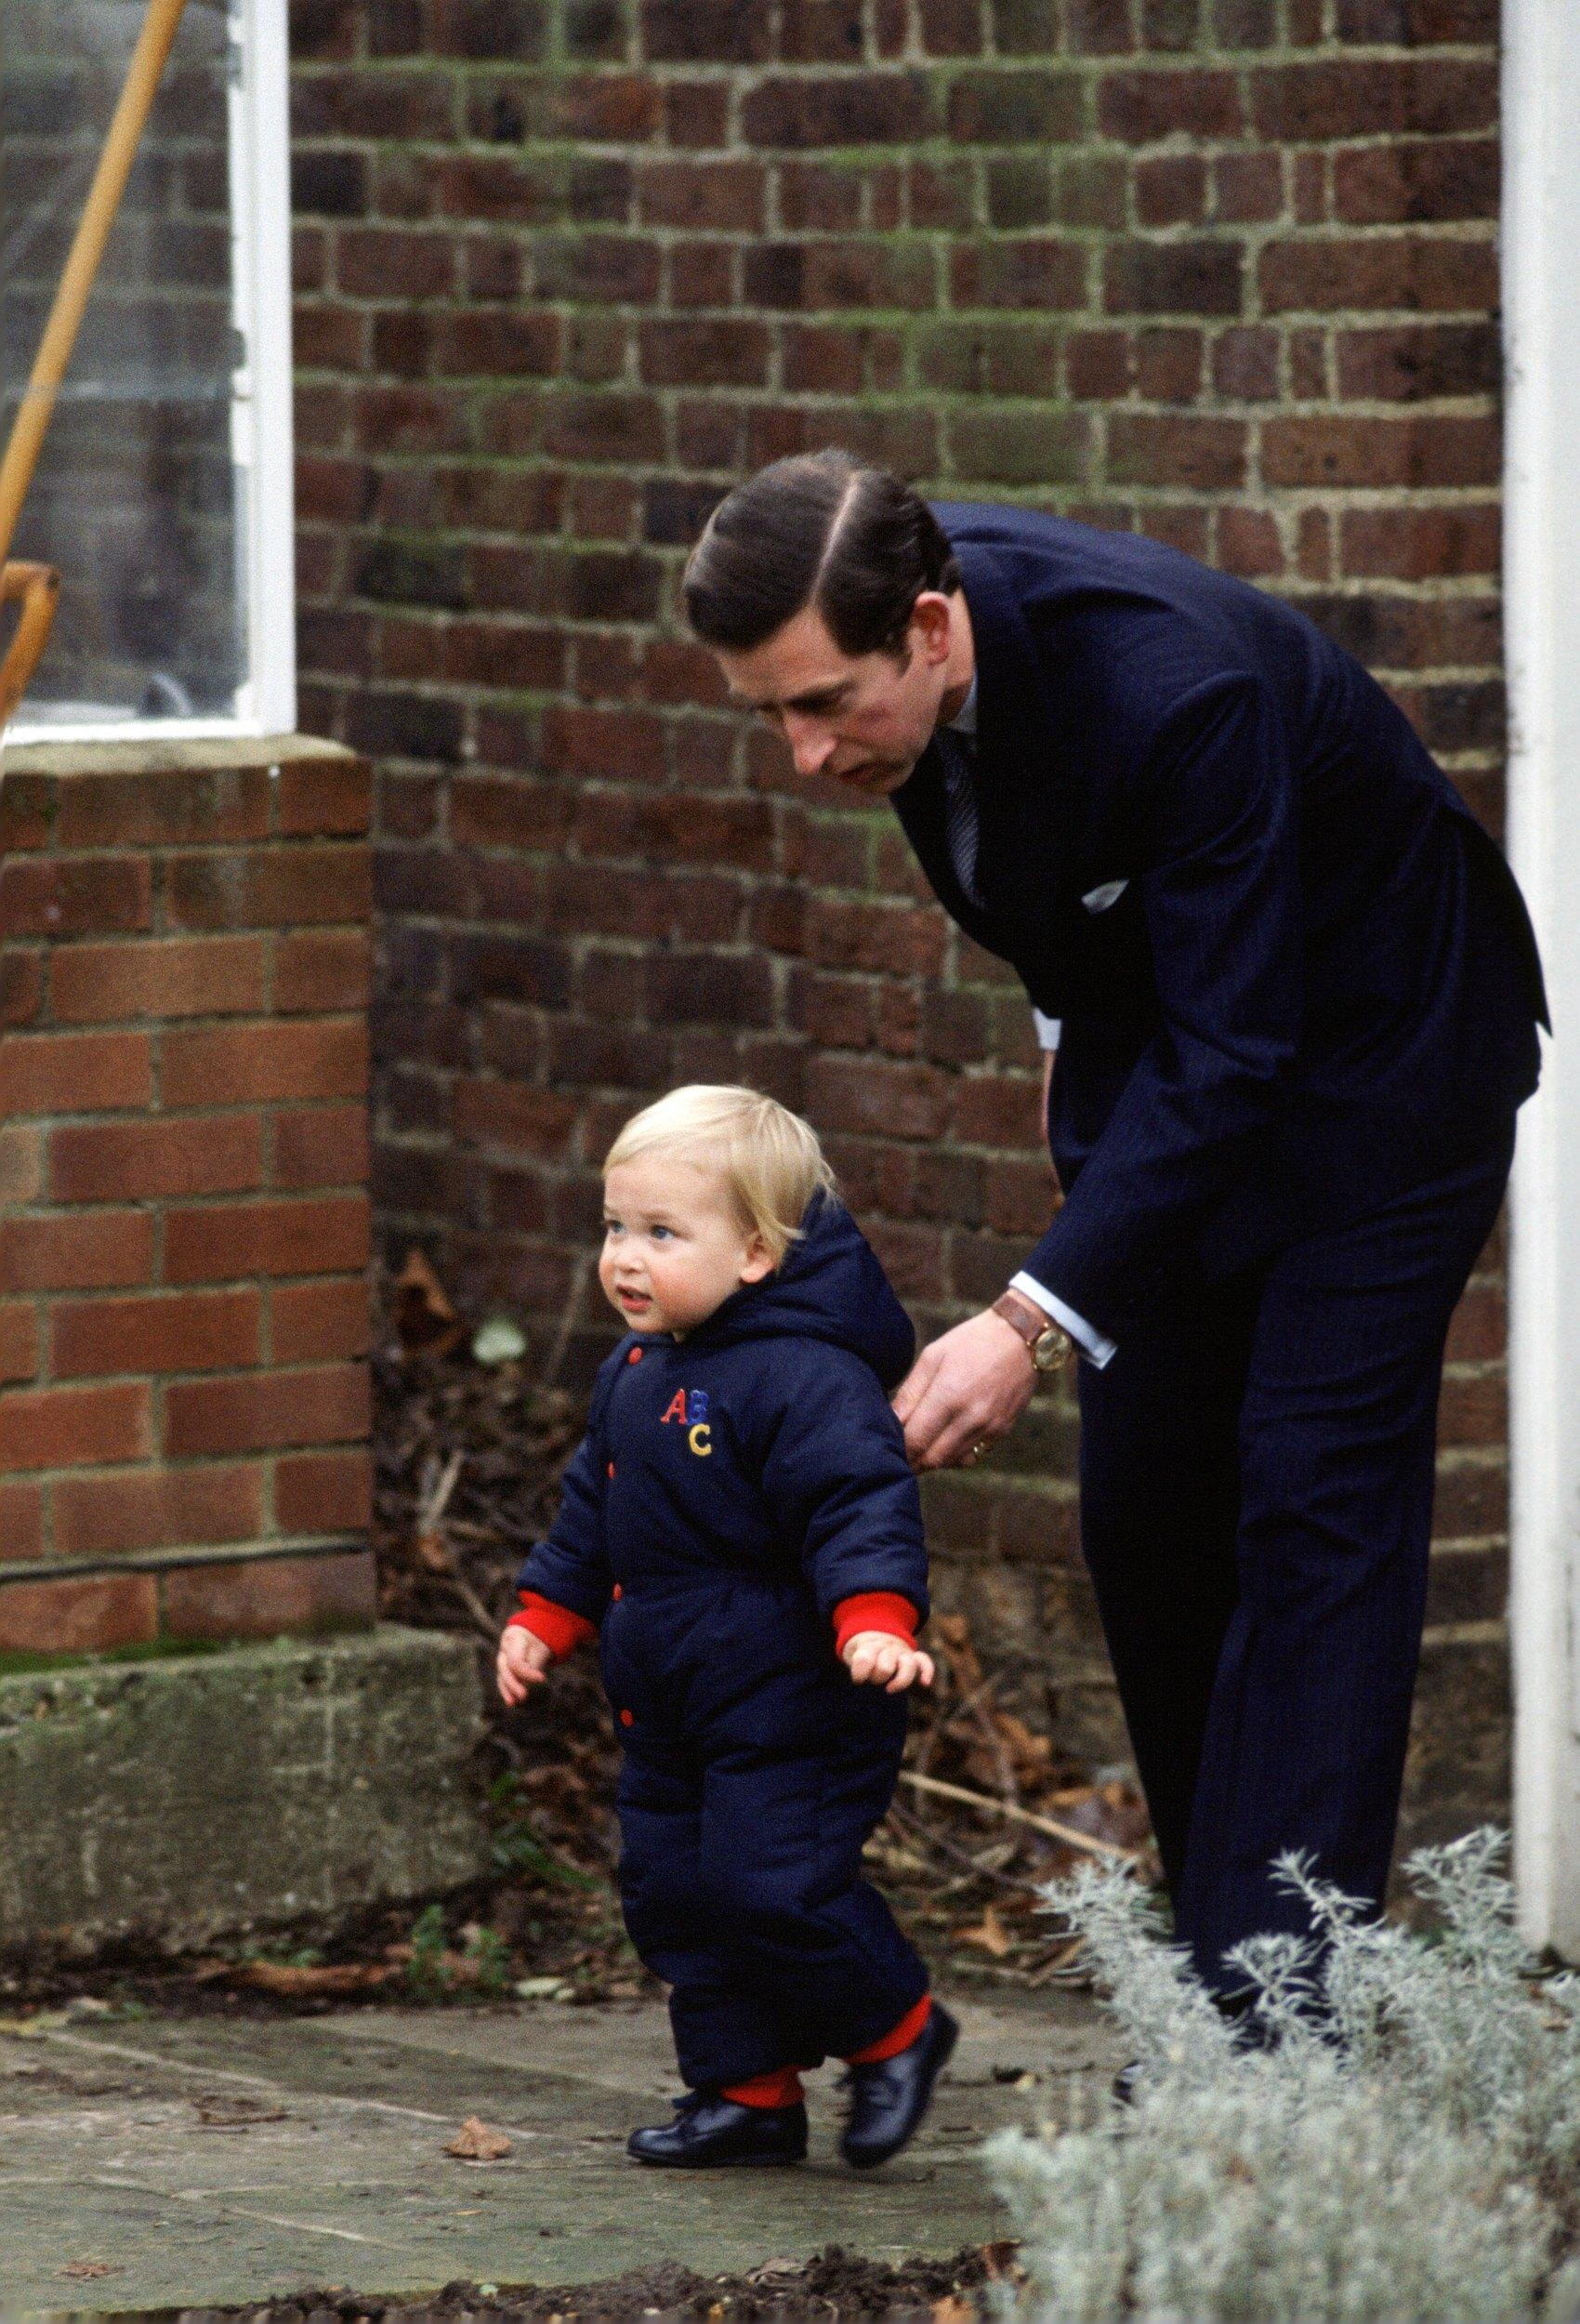 UNITED KINGDOM - DECEMBER 14:  Prince Charles, Prince of Wales with his son, Prince William, in the garden at Kensington Palace  (Photo by Tim Graham/Getty Images)